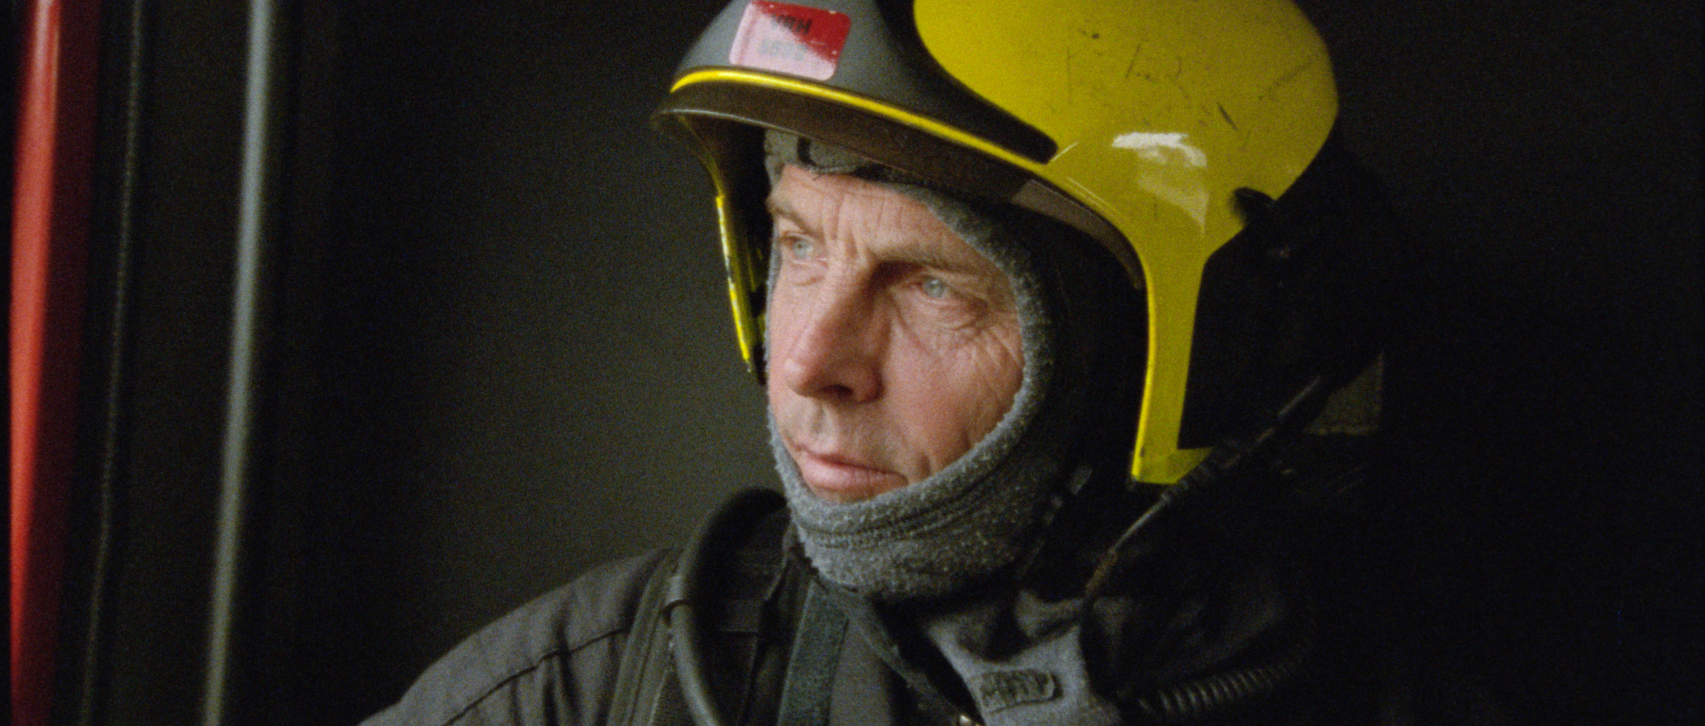 Still from the film Door Het Vuur. A firefighter is sitting in a firetruck. His a close-up and he is looking out the window.